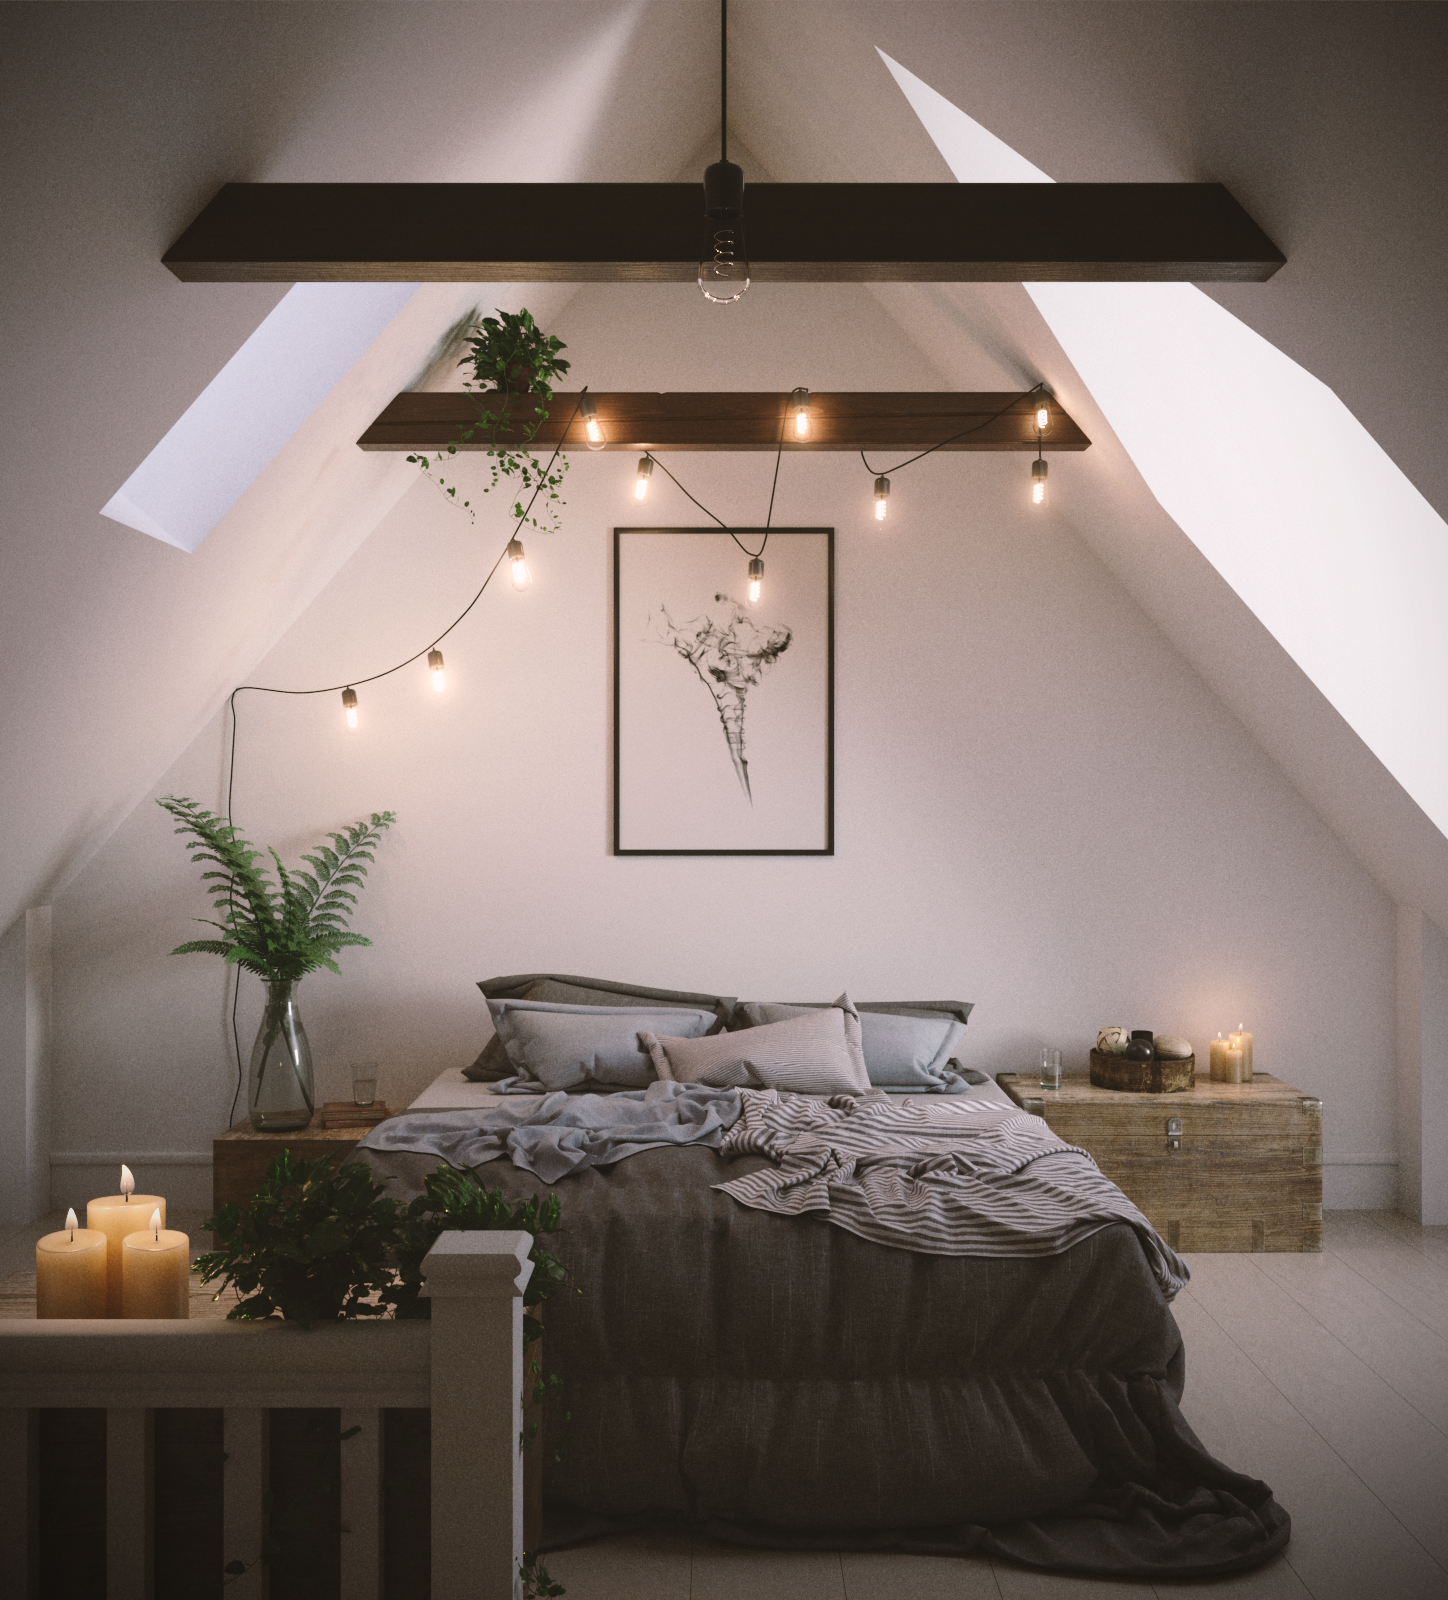 Bedroom_PP_2